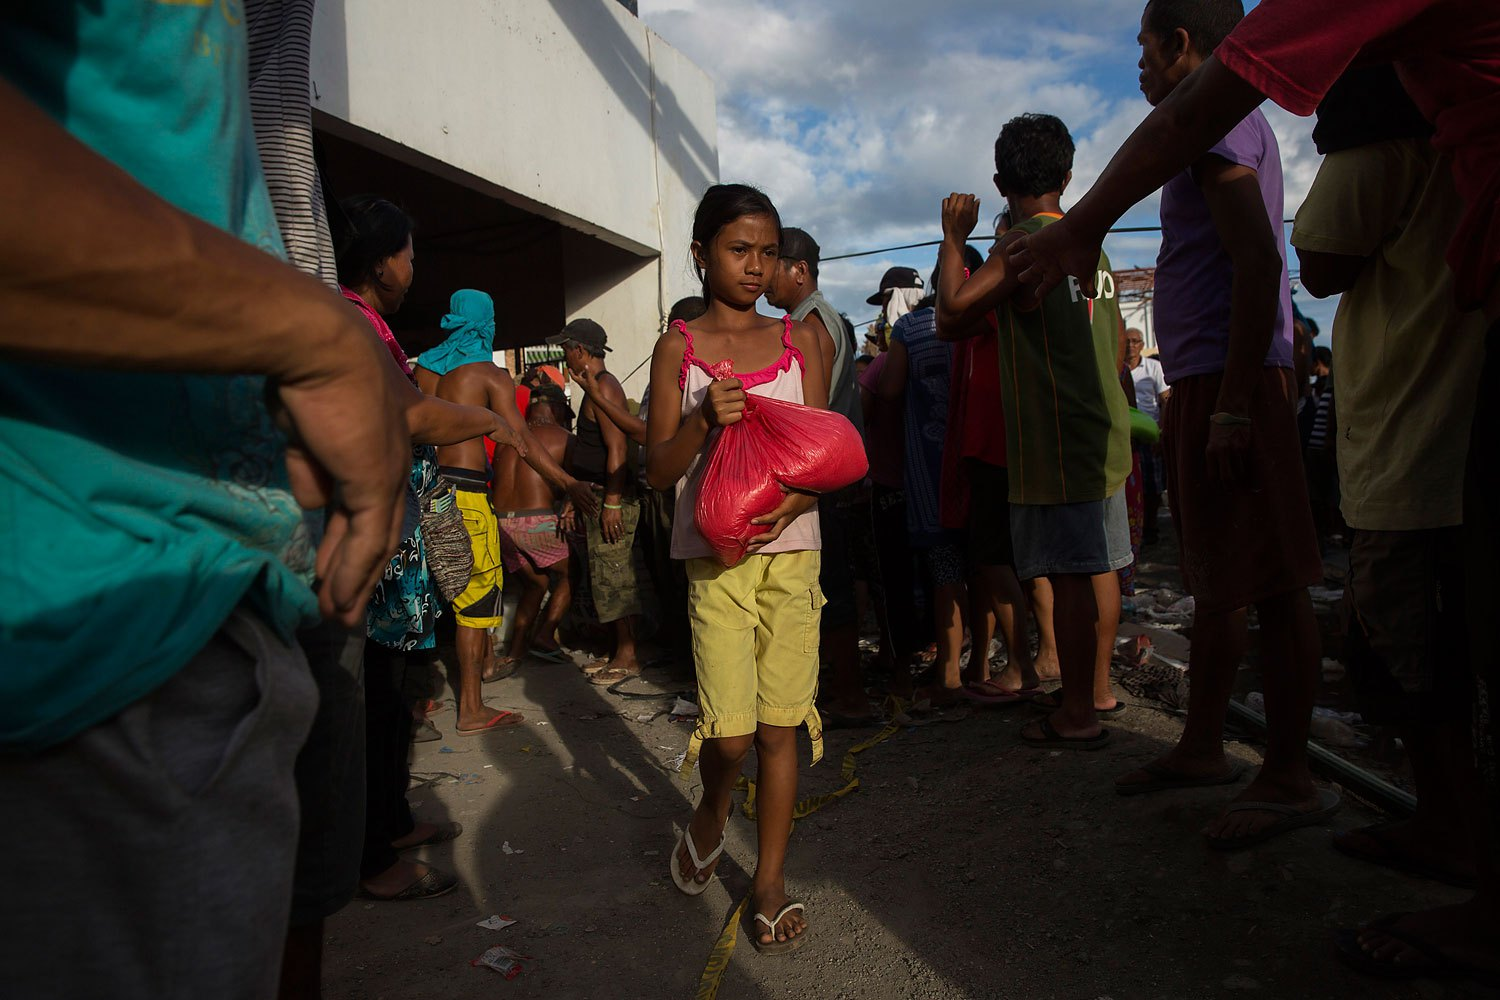 A girl affected by Typhoon Haiyan collects food aid in Tanauan, Philippines on November 19, 2013.